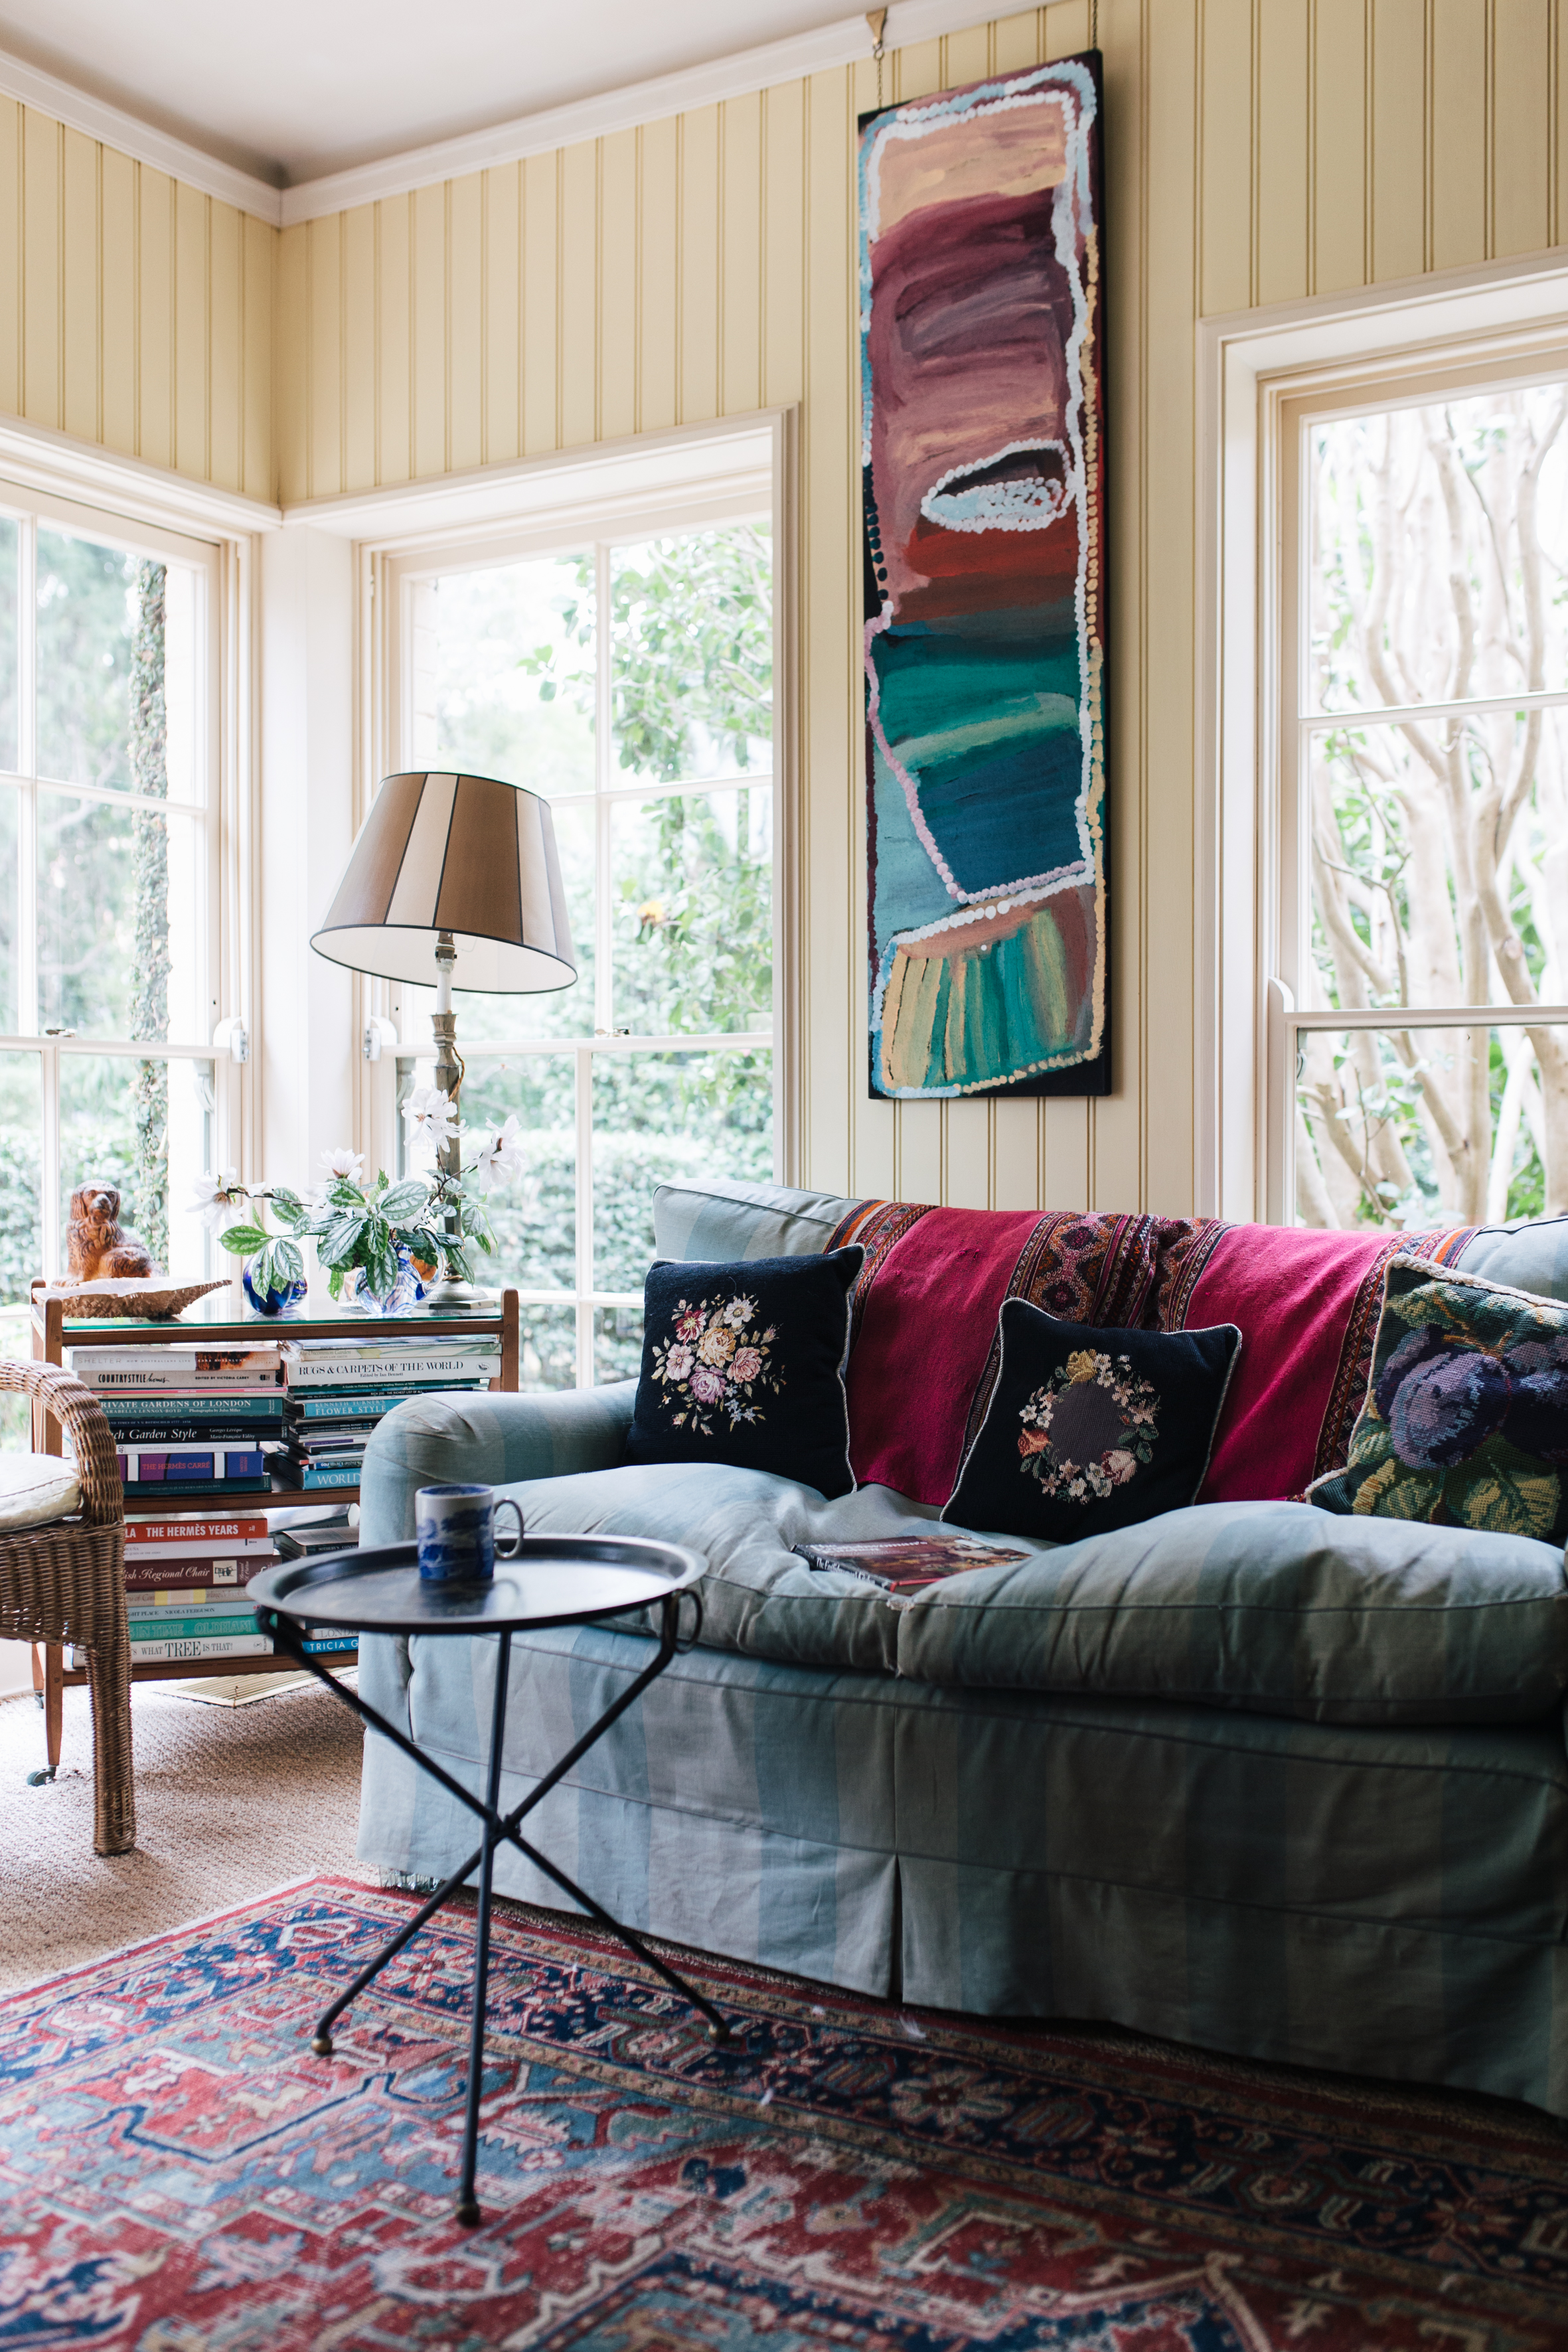 And the perfect spot to read it: Annabelle's mum's sofa